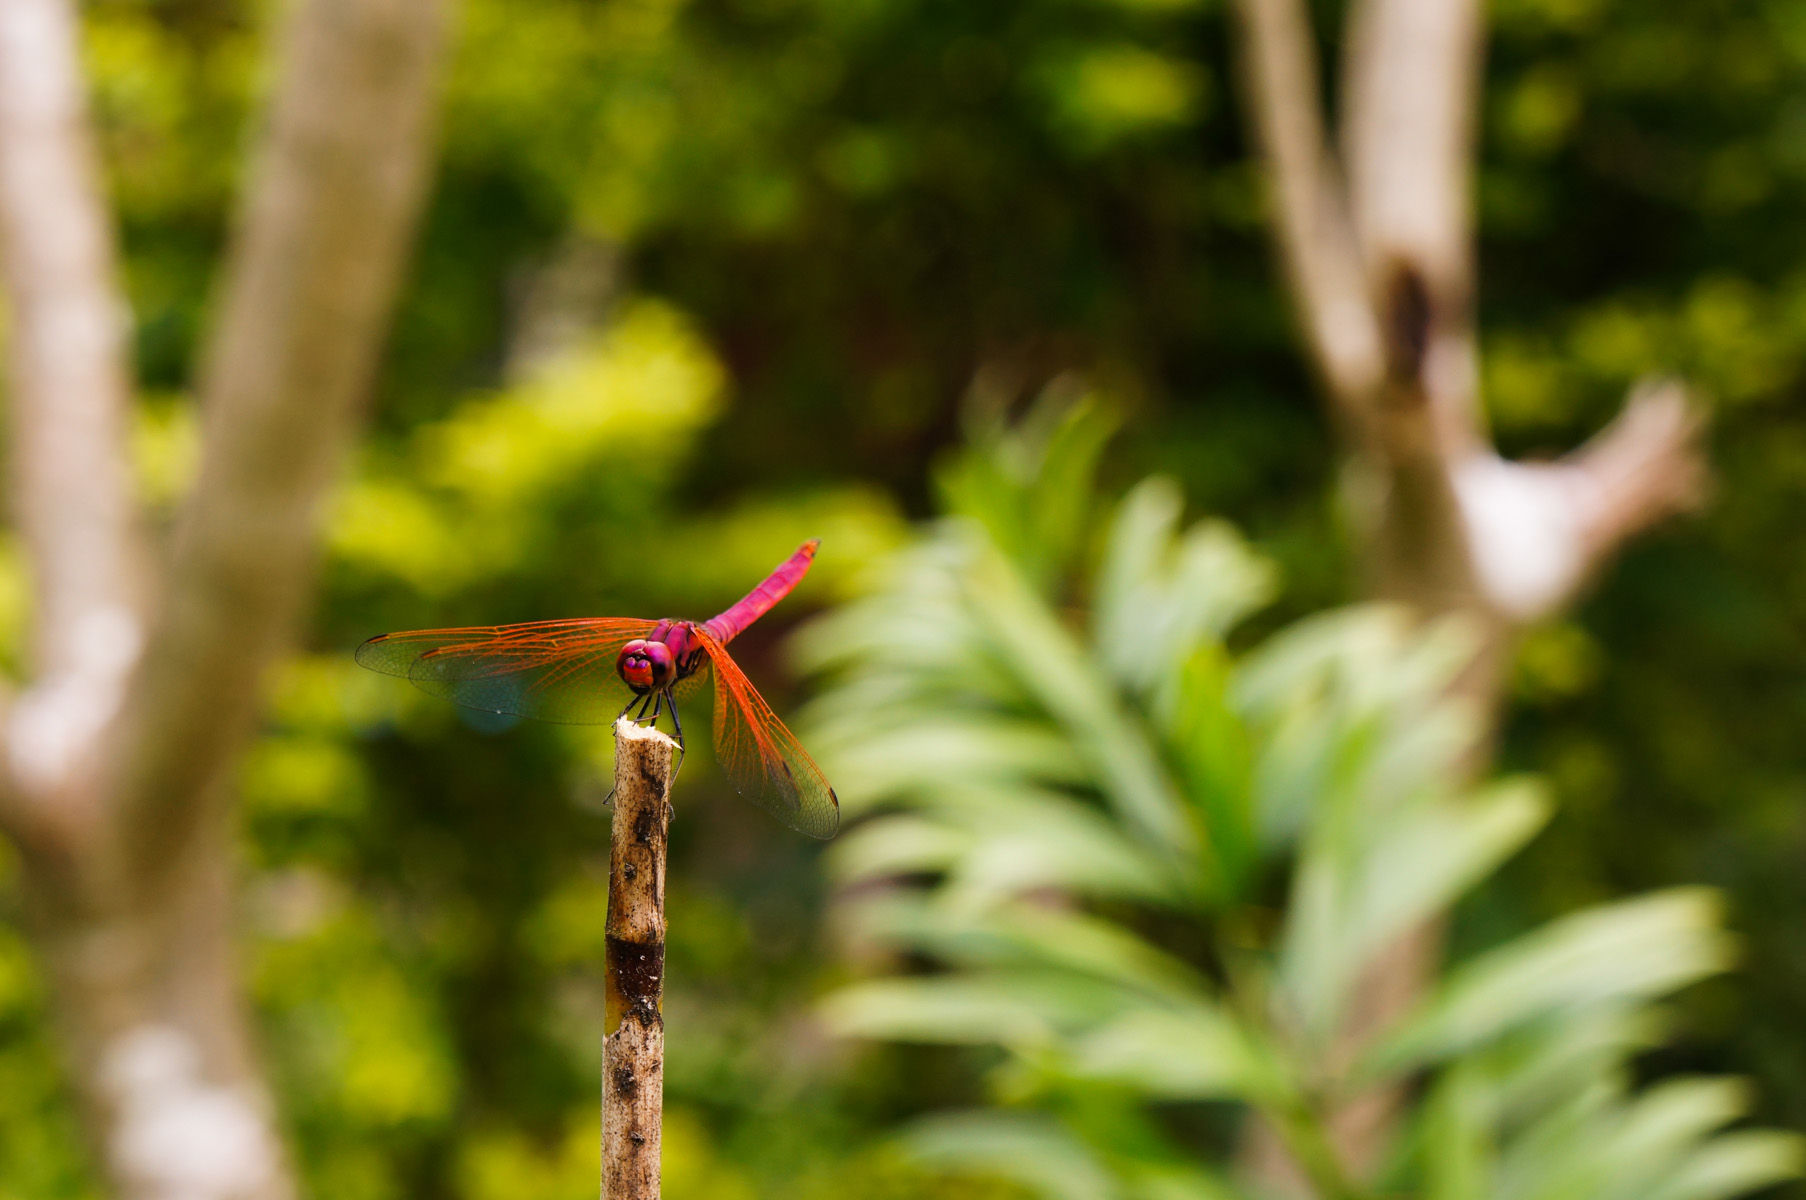 Dragonfly at Malee's garden